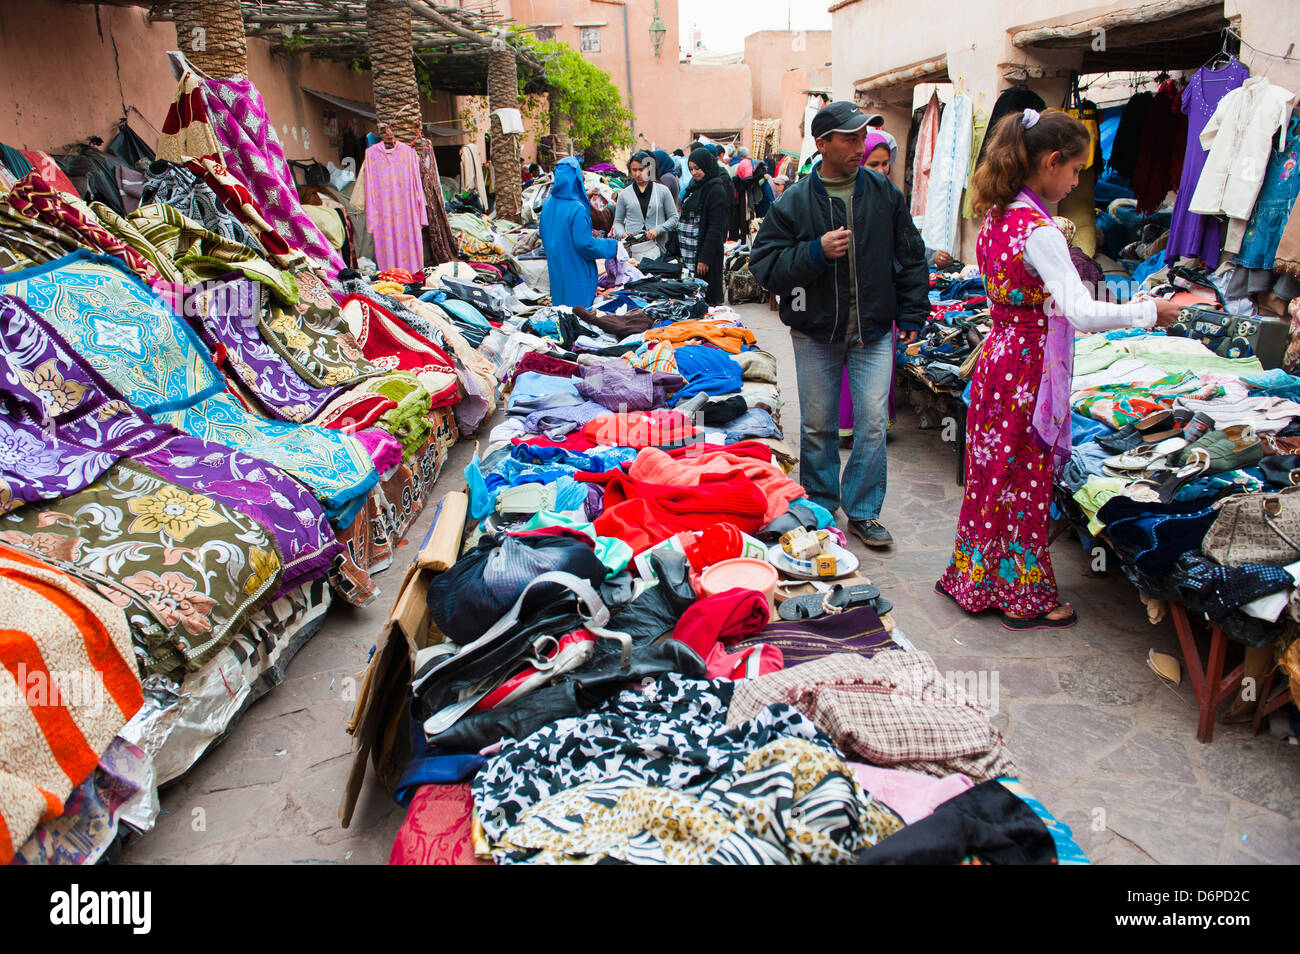 Clothes stalls in the souks of the old Medina of Marrakech, Morocco, North Africa, Africa - Stock Image